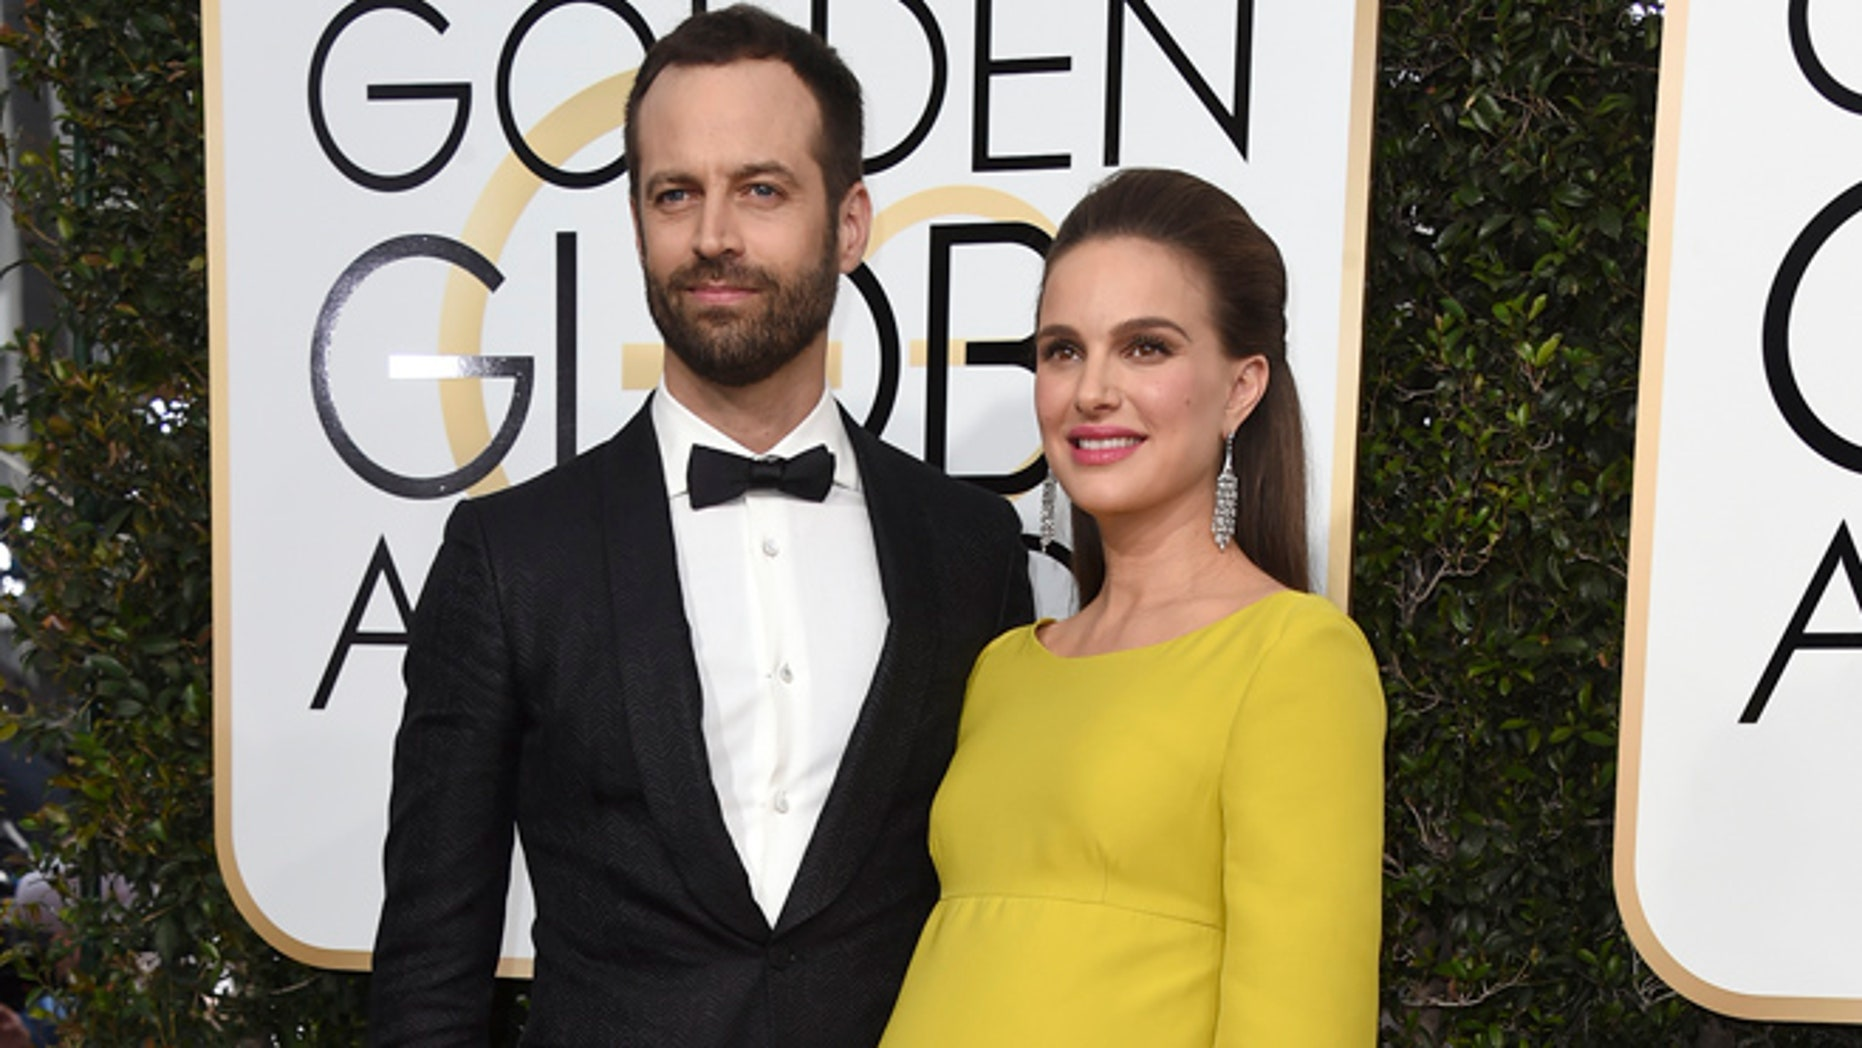 Natalie Portman and husband Benjamin Millepied welcomed daughter Amalia on Feb. 22.